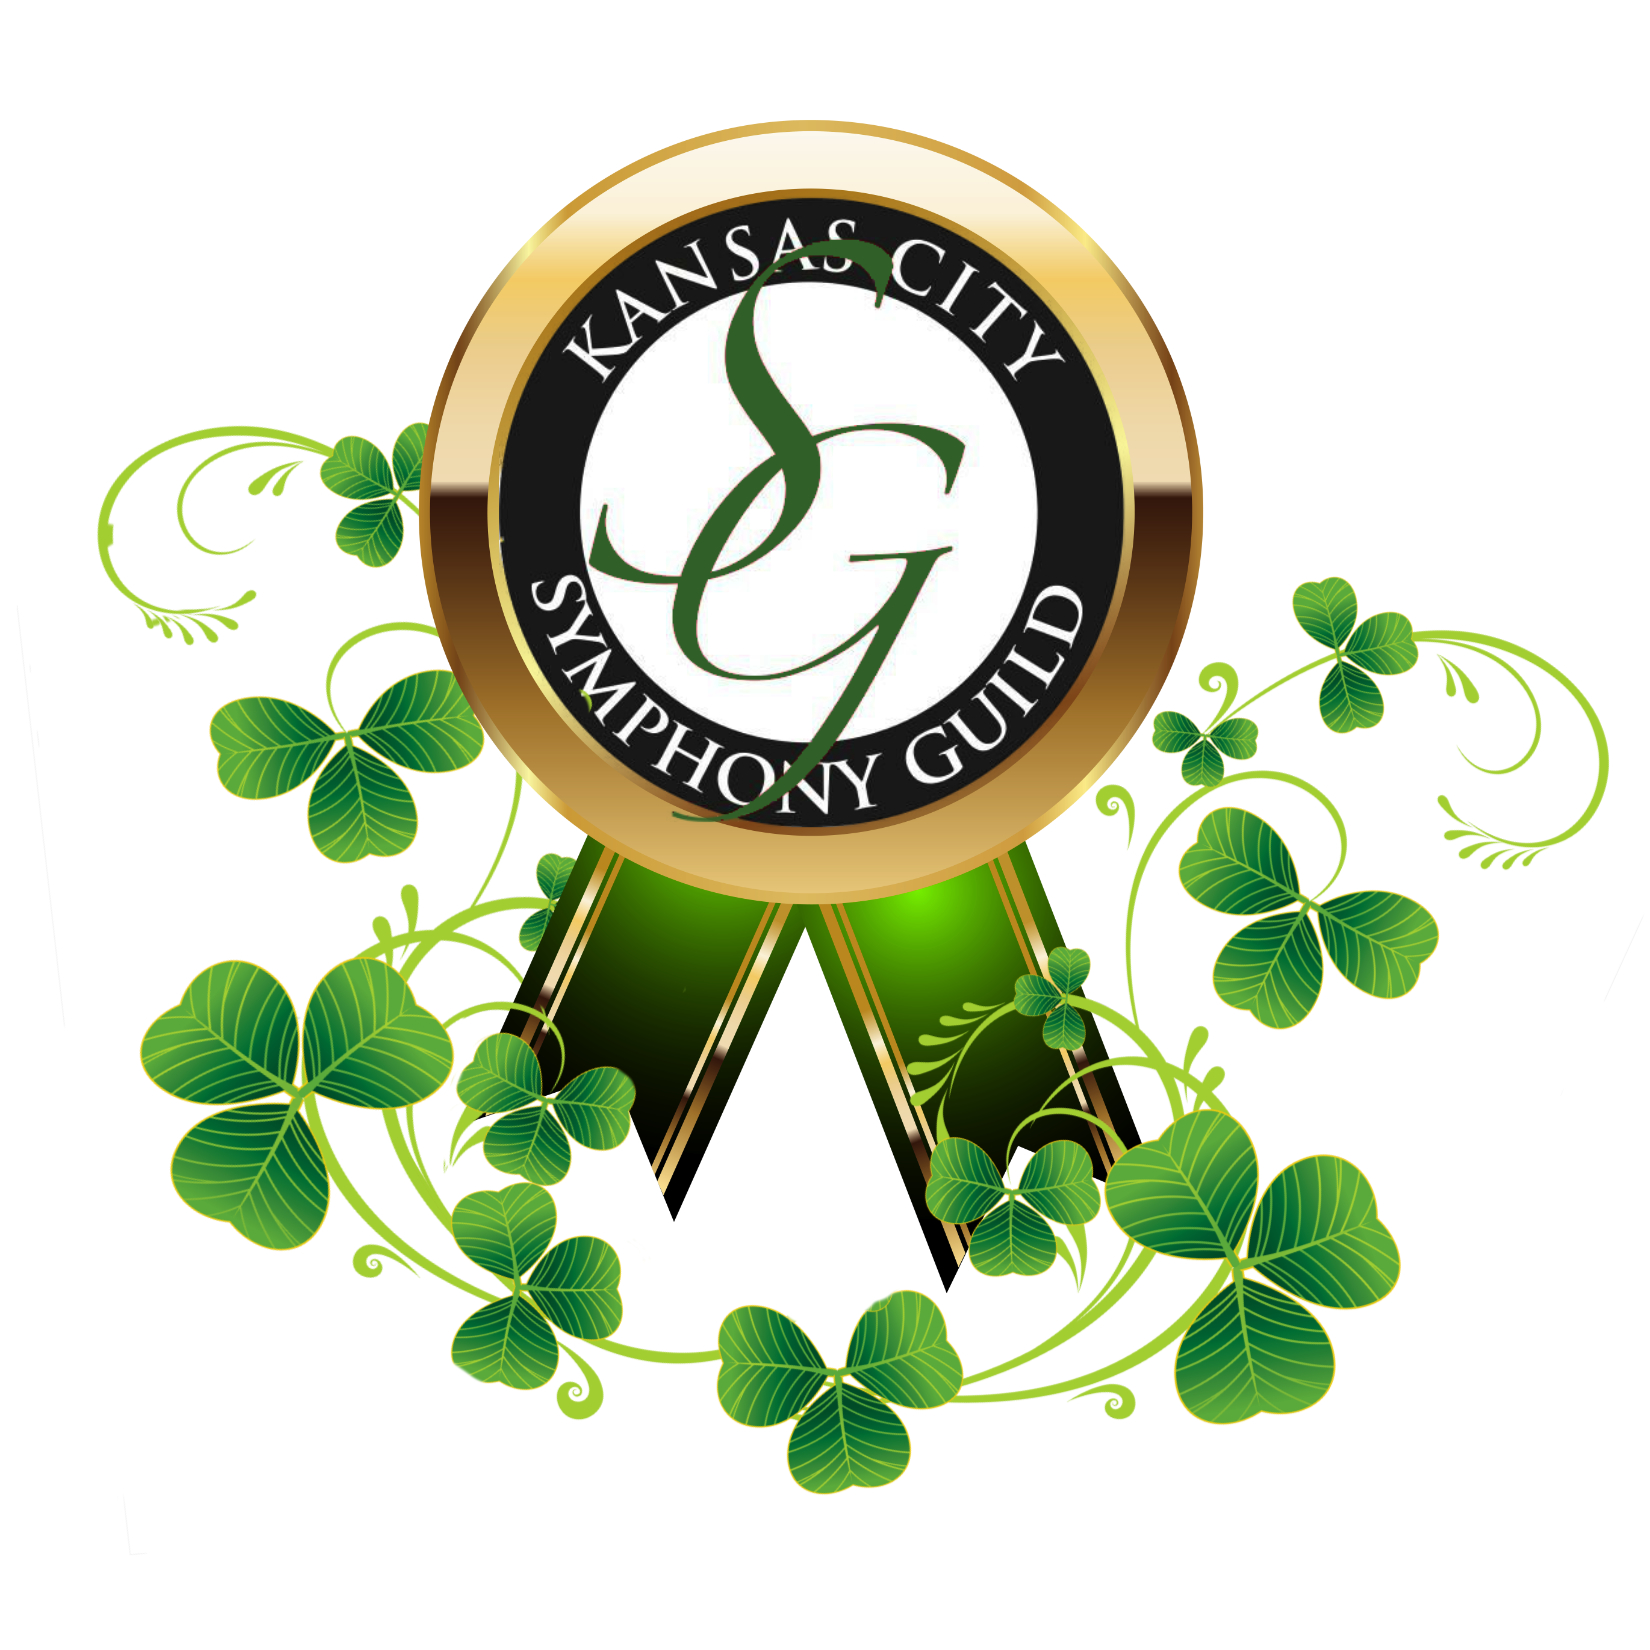 Kansas City Symphony Guild logo with shamrocks